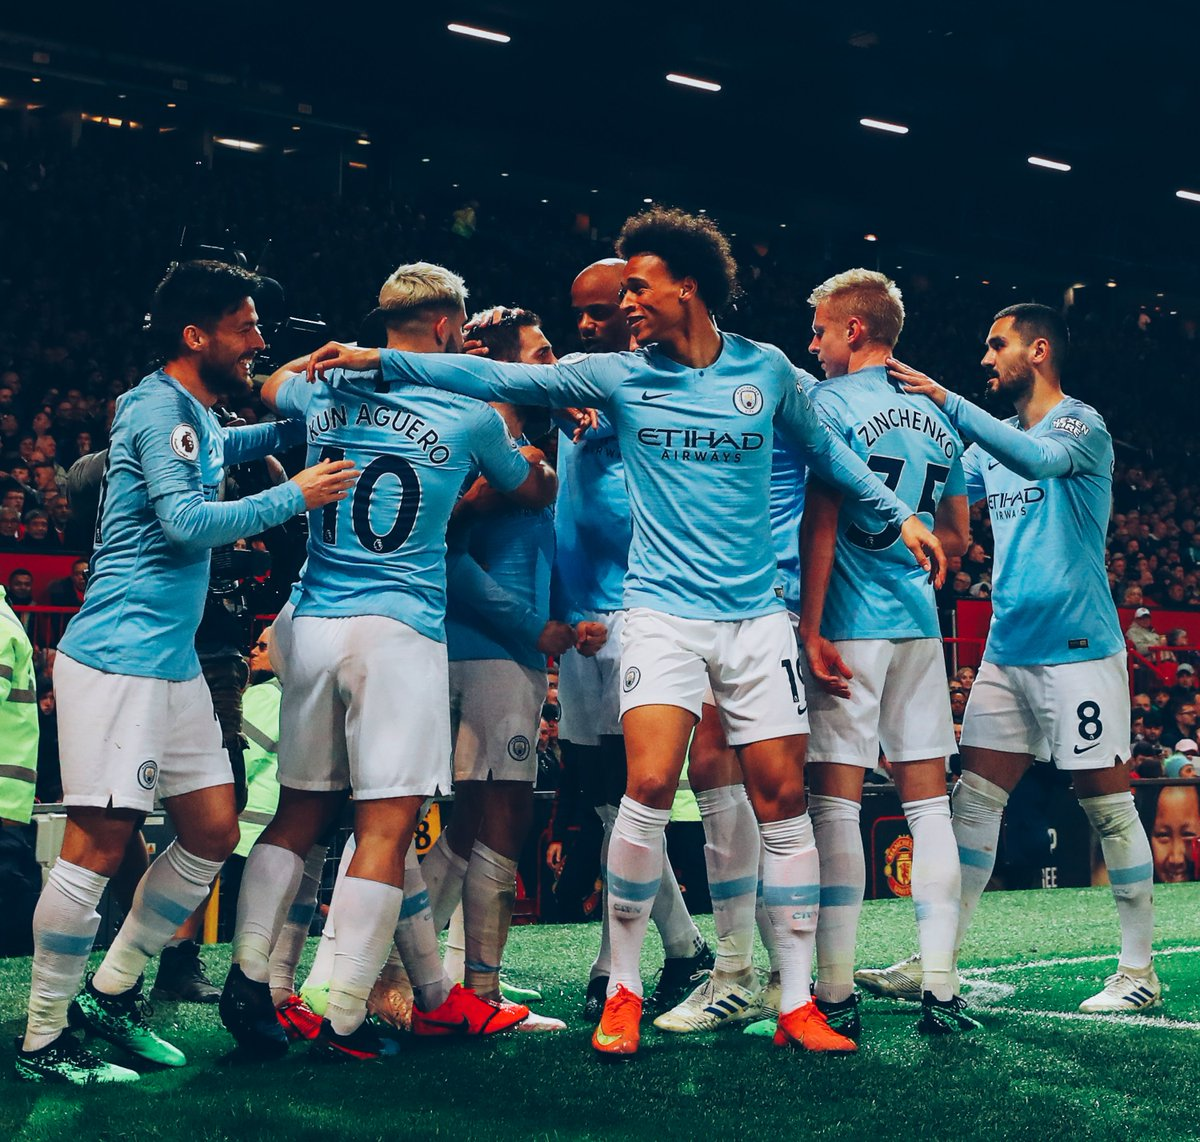 Manchester City's photo on Manchester is Blue